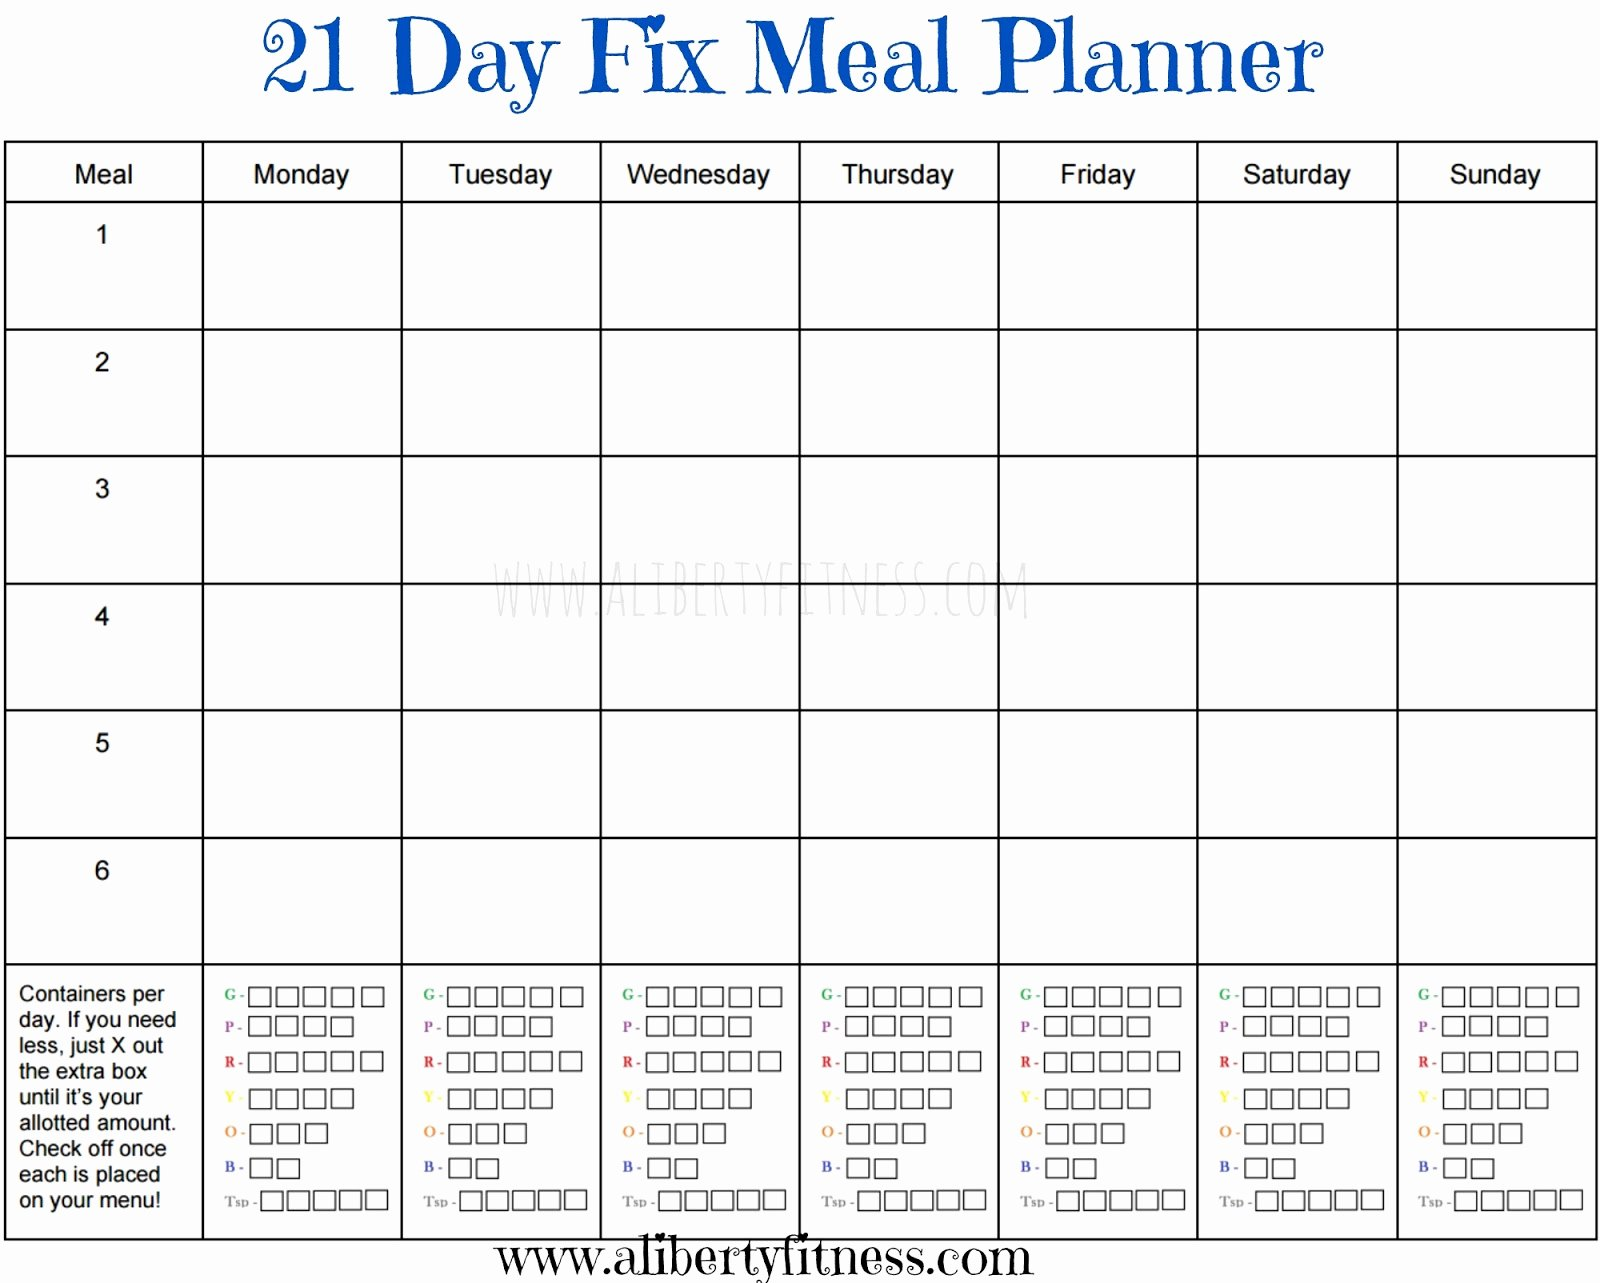 Meal Plan Calendar Template Luxury Grace & Grit 21 Day Fix Meal Planner and Grocery List